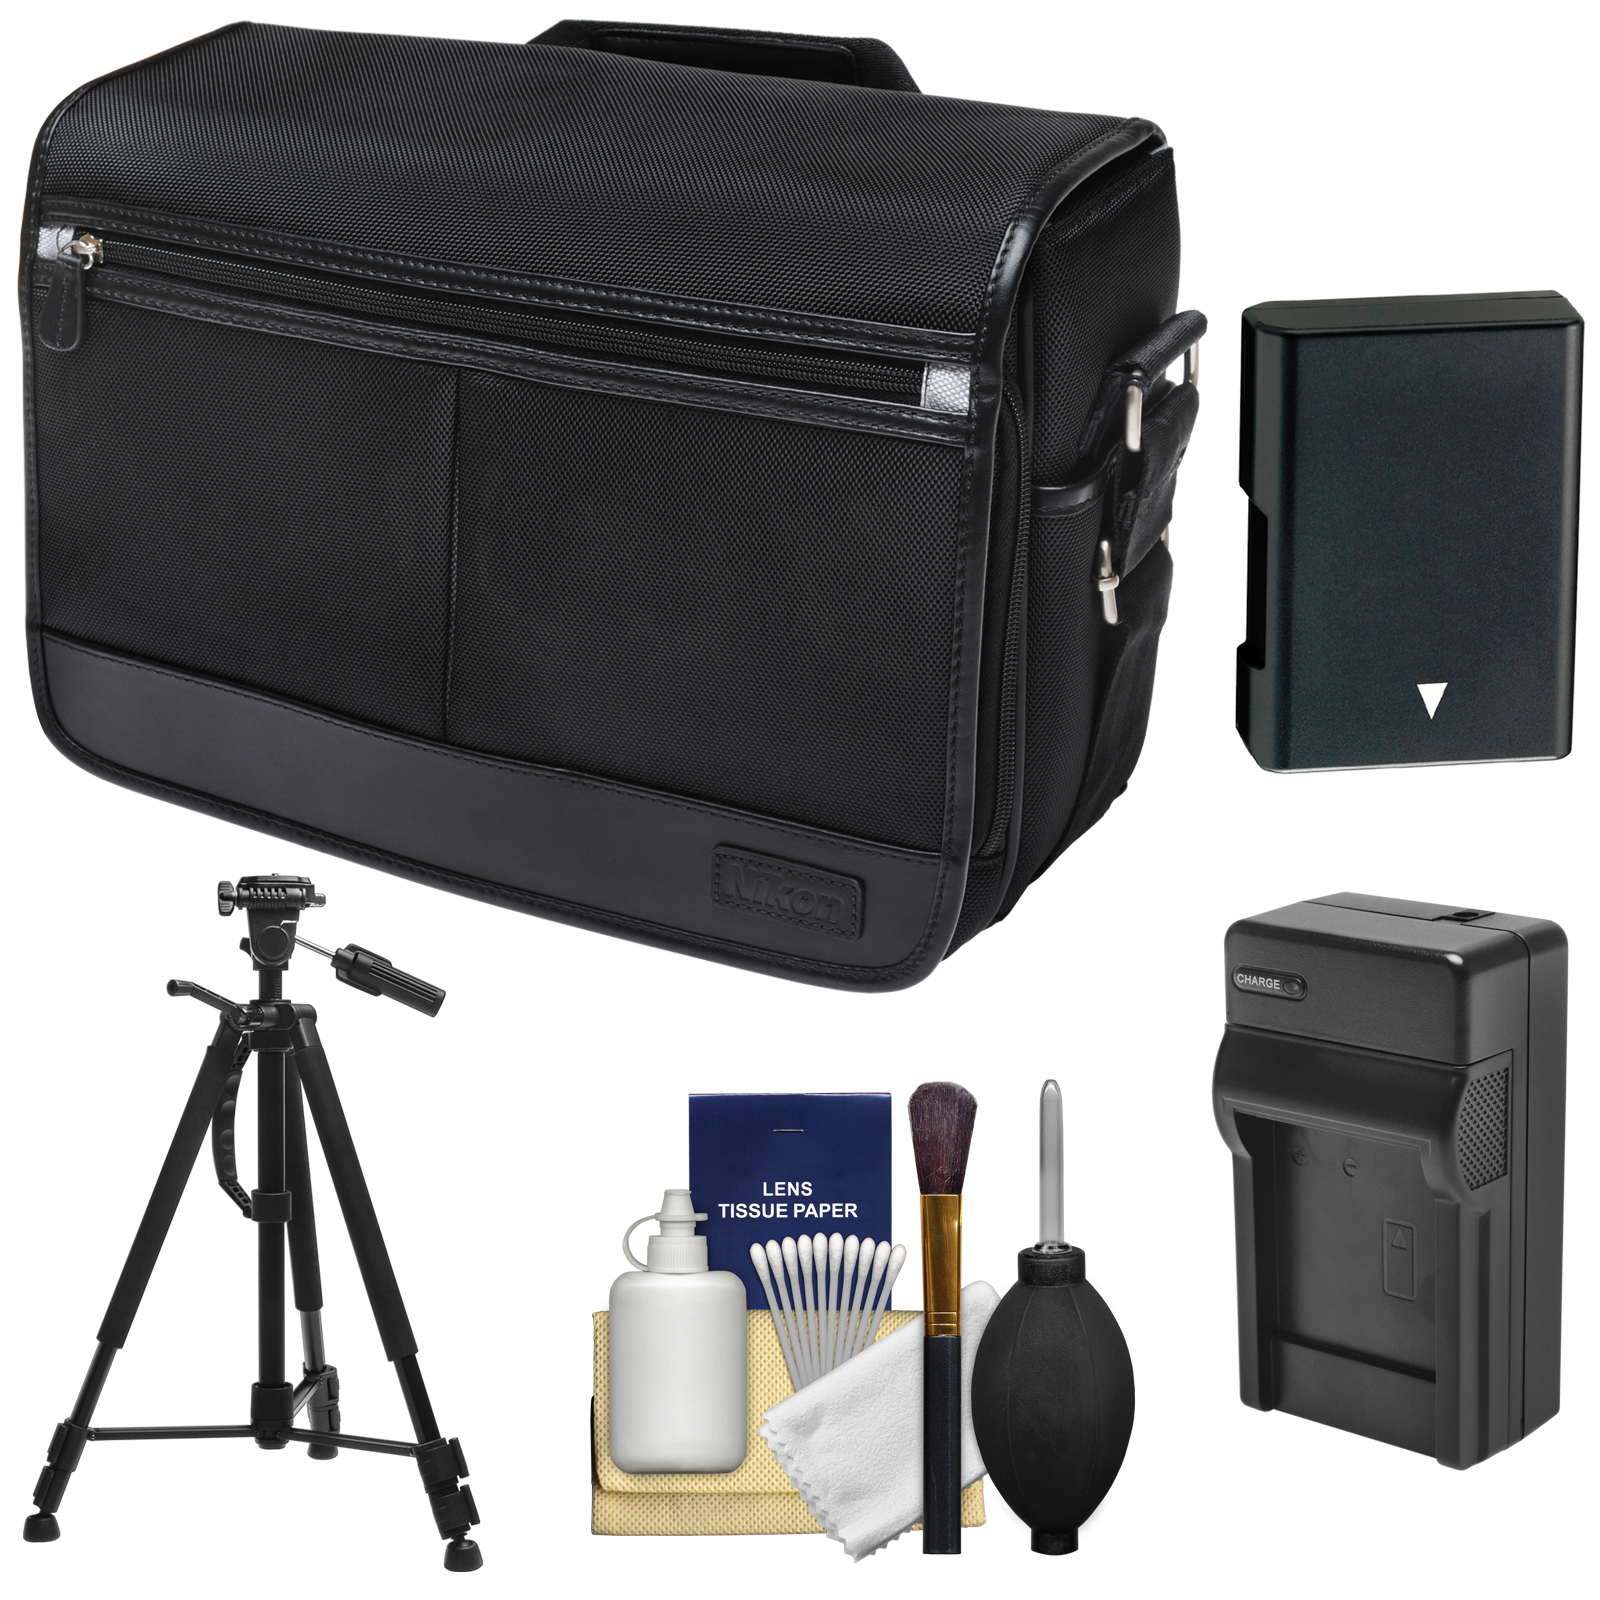 Nikon DSLR Camera/Tablet Messenger Shoulder Bag with EN-EL14 Battery & Charger + Tripod + Kit for Df, D3100, D3200, D3300, D5100, D5200, D5300, D5500